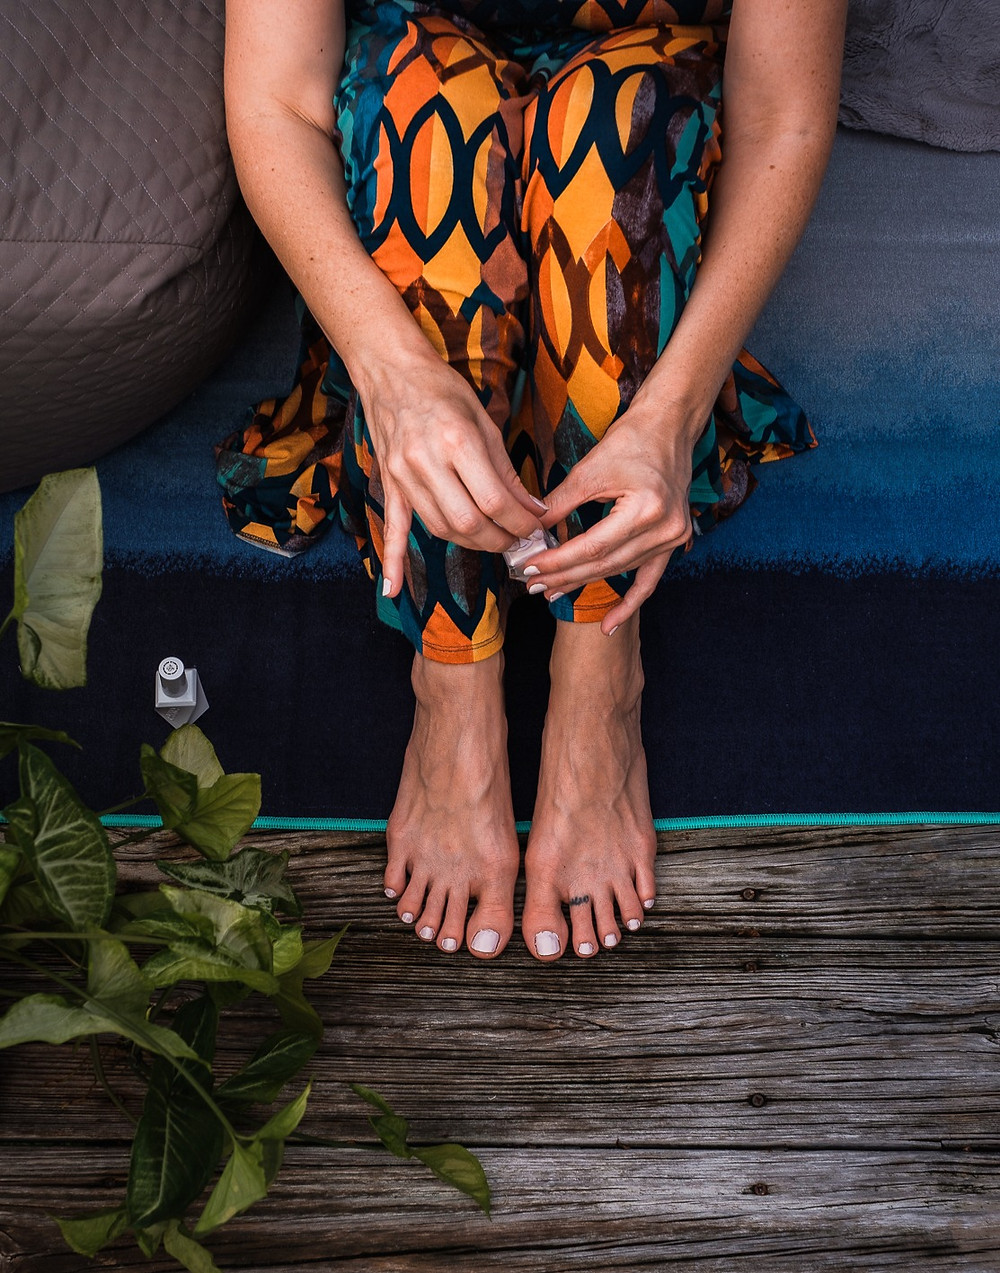 Woman with nail polish, self care DIY manicure and pedicure for personal brand photography.